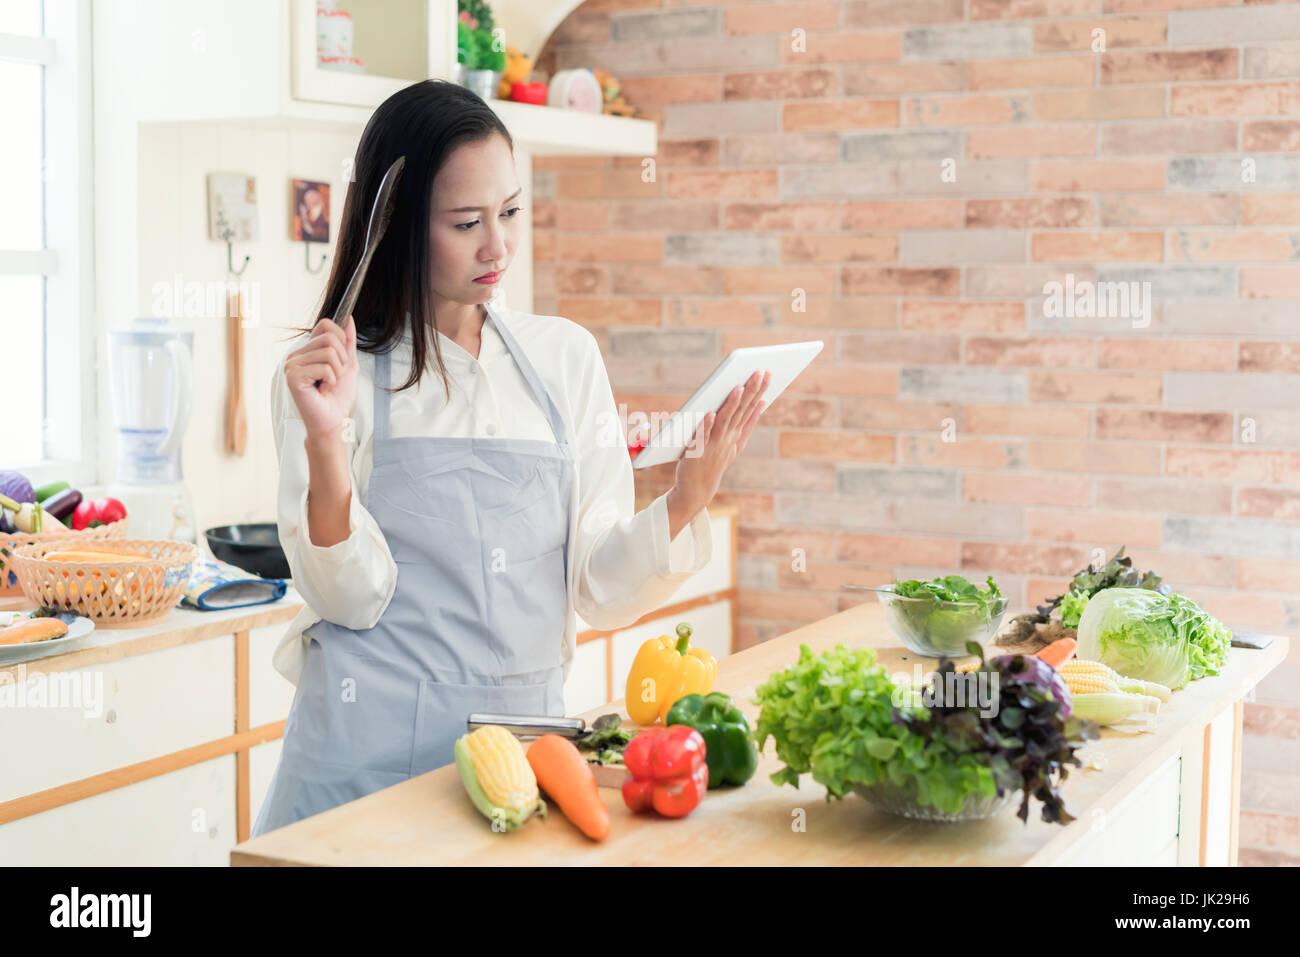 Cheerful Asian young woman is cooking in the kitchen with joy. She is standing and holding digital tablet of recipe. - Stock Image